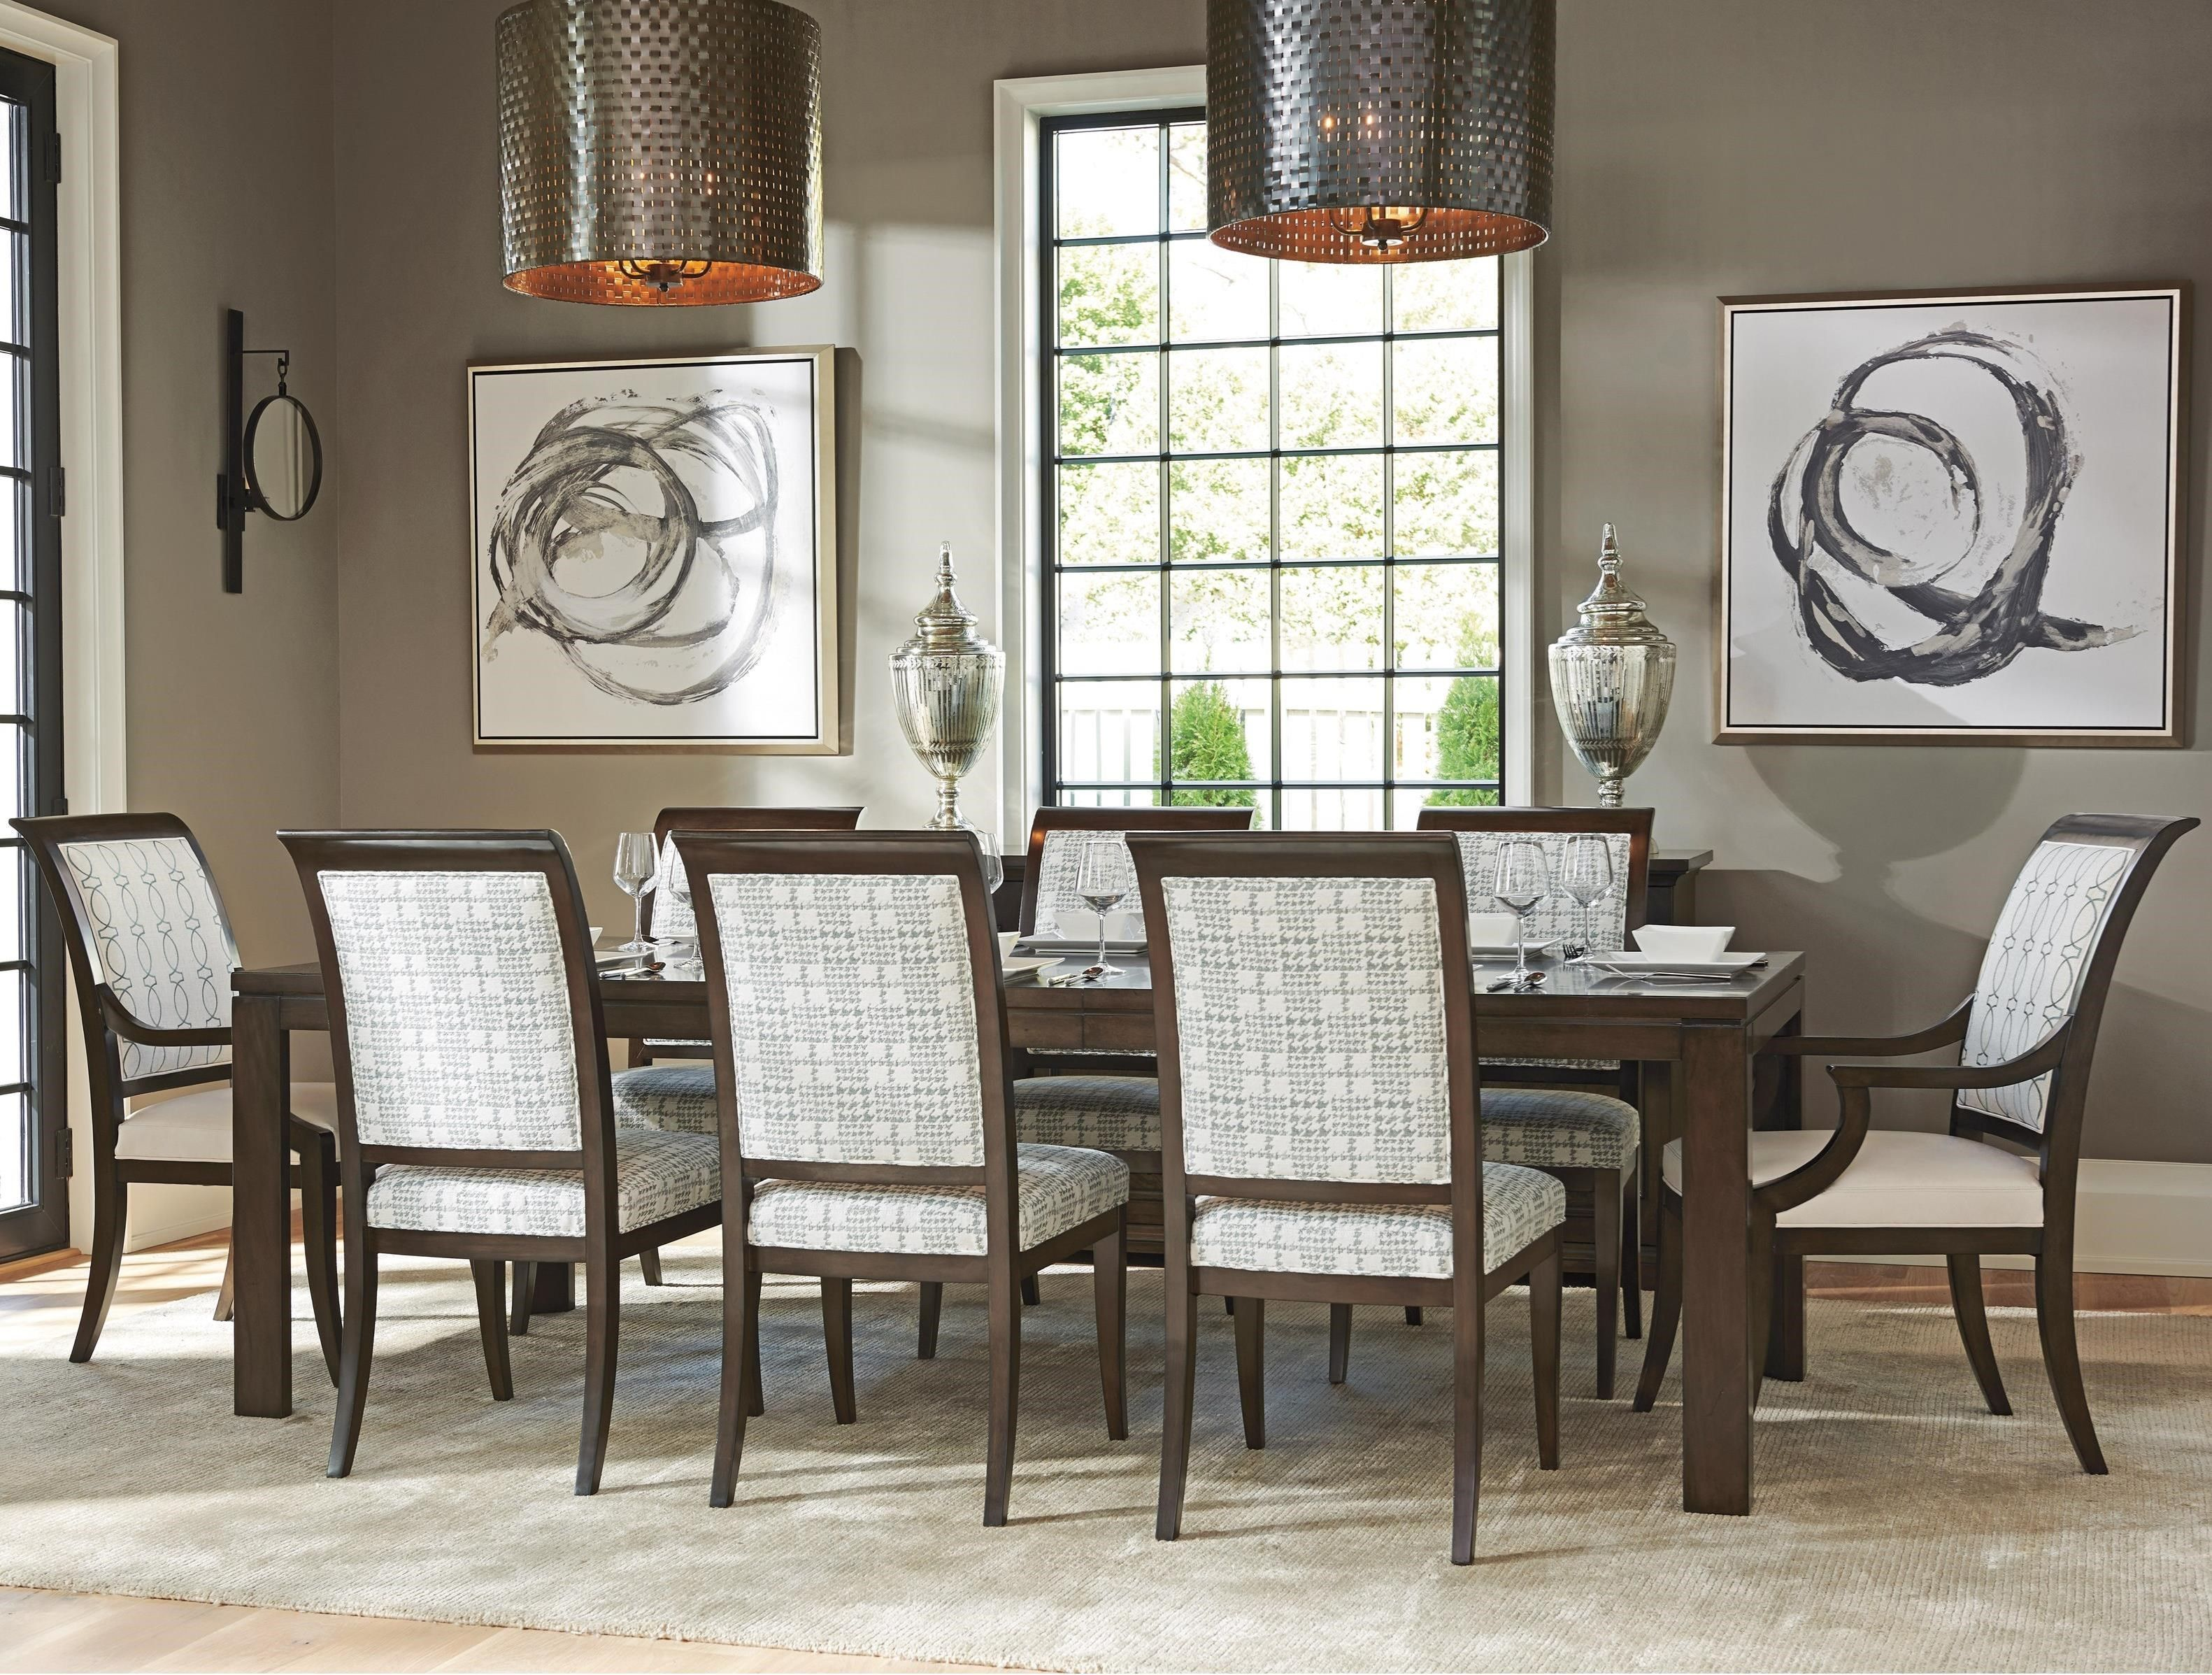 Brentwood 9 Pc Dining Set By Barclay Butera At Baer S Furniture